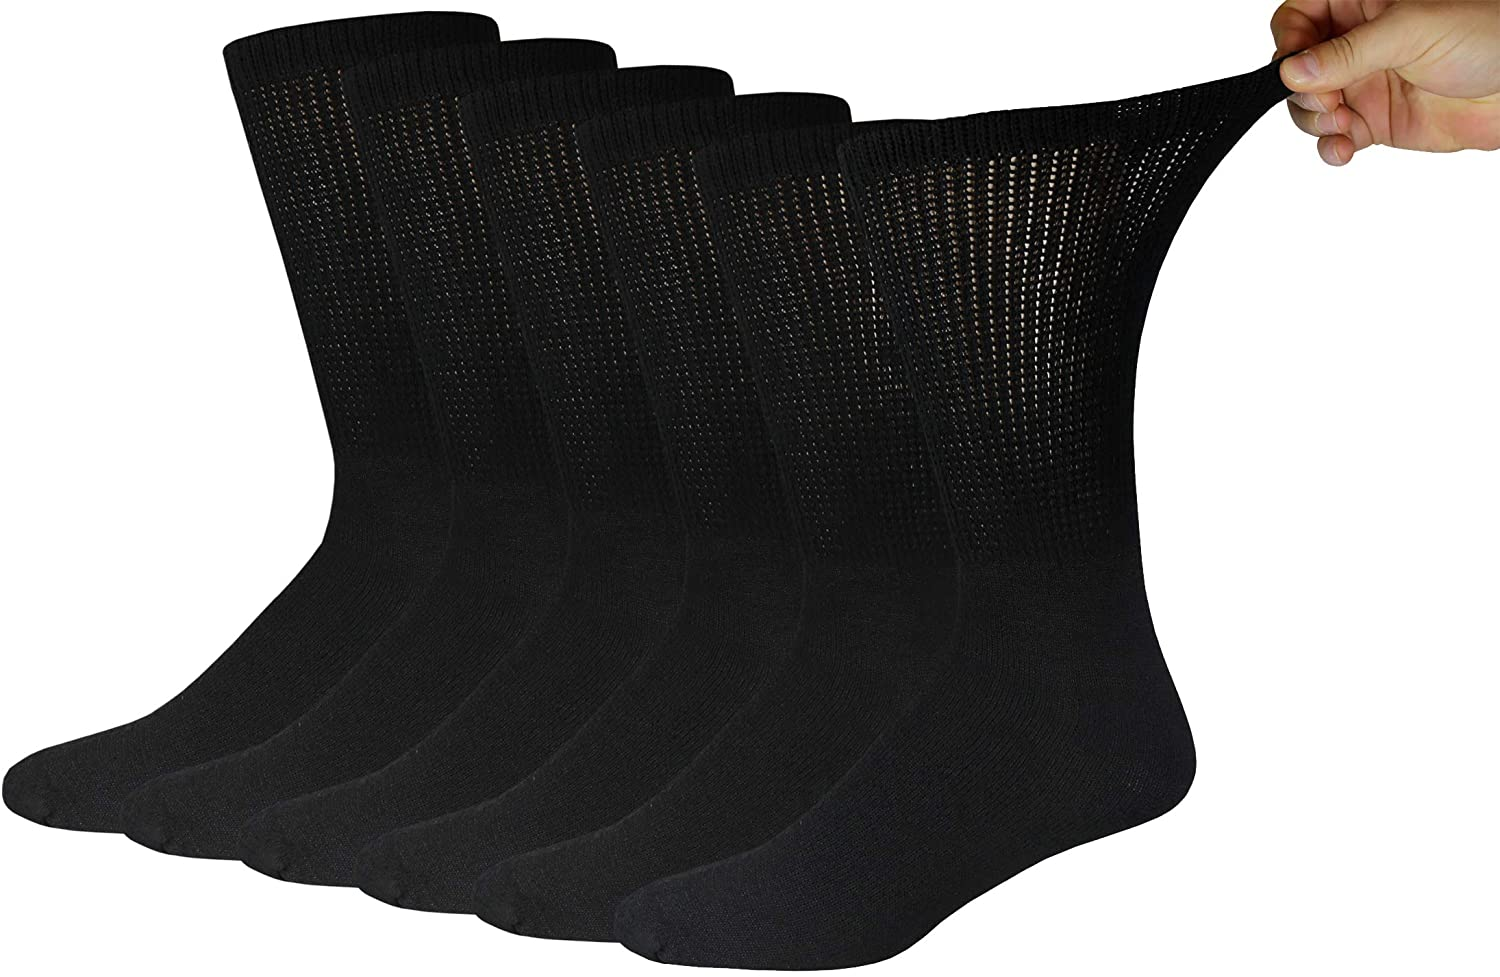 6 Pairs of Cotton Diabetic Neuropathy Crew Socks (10-13, Black)